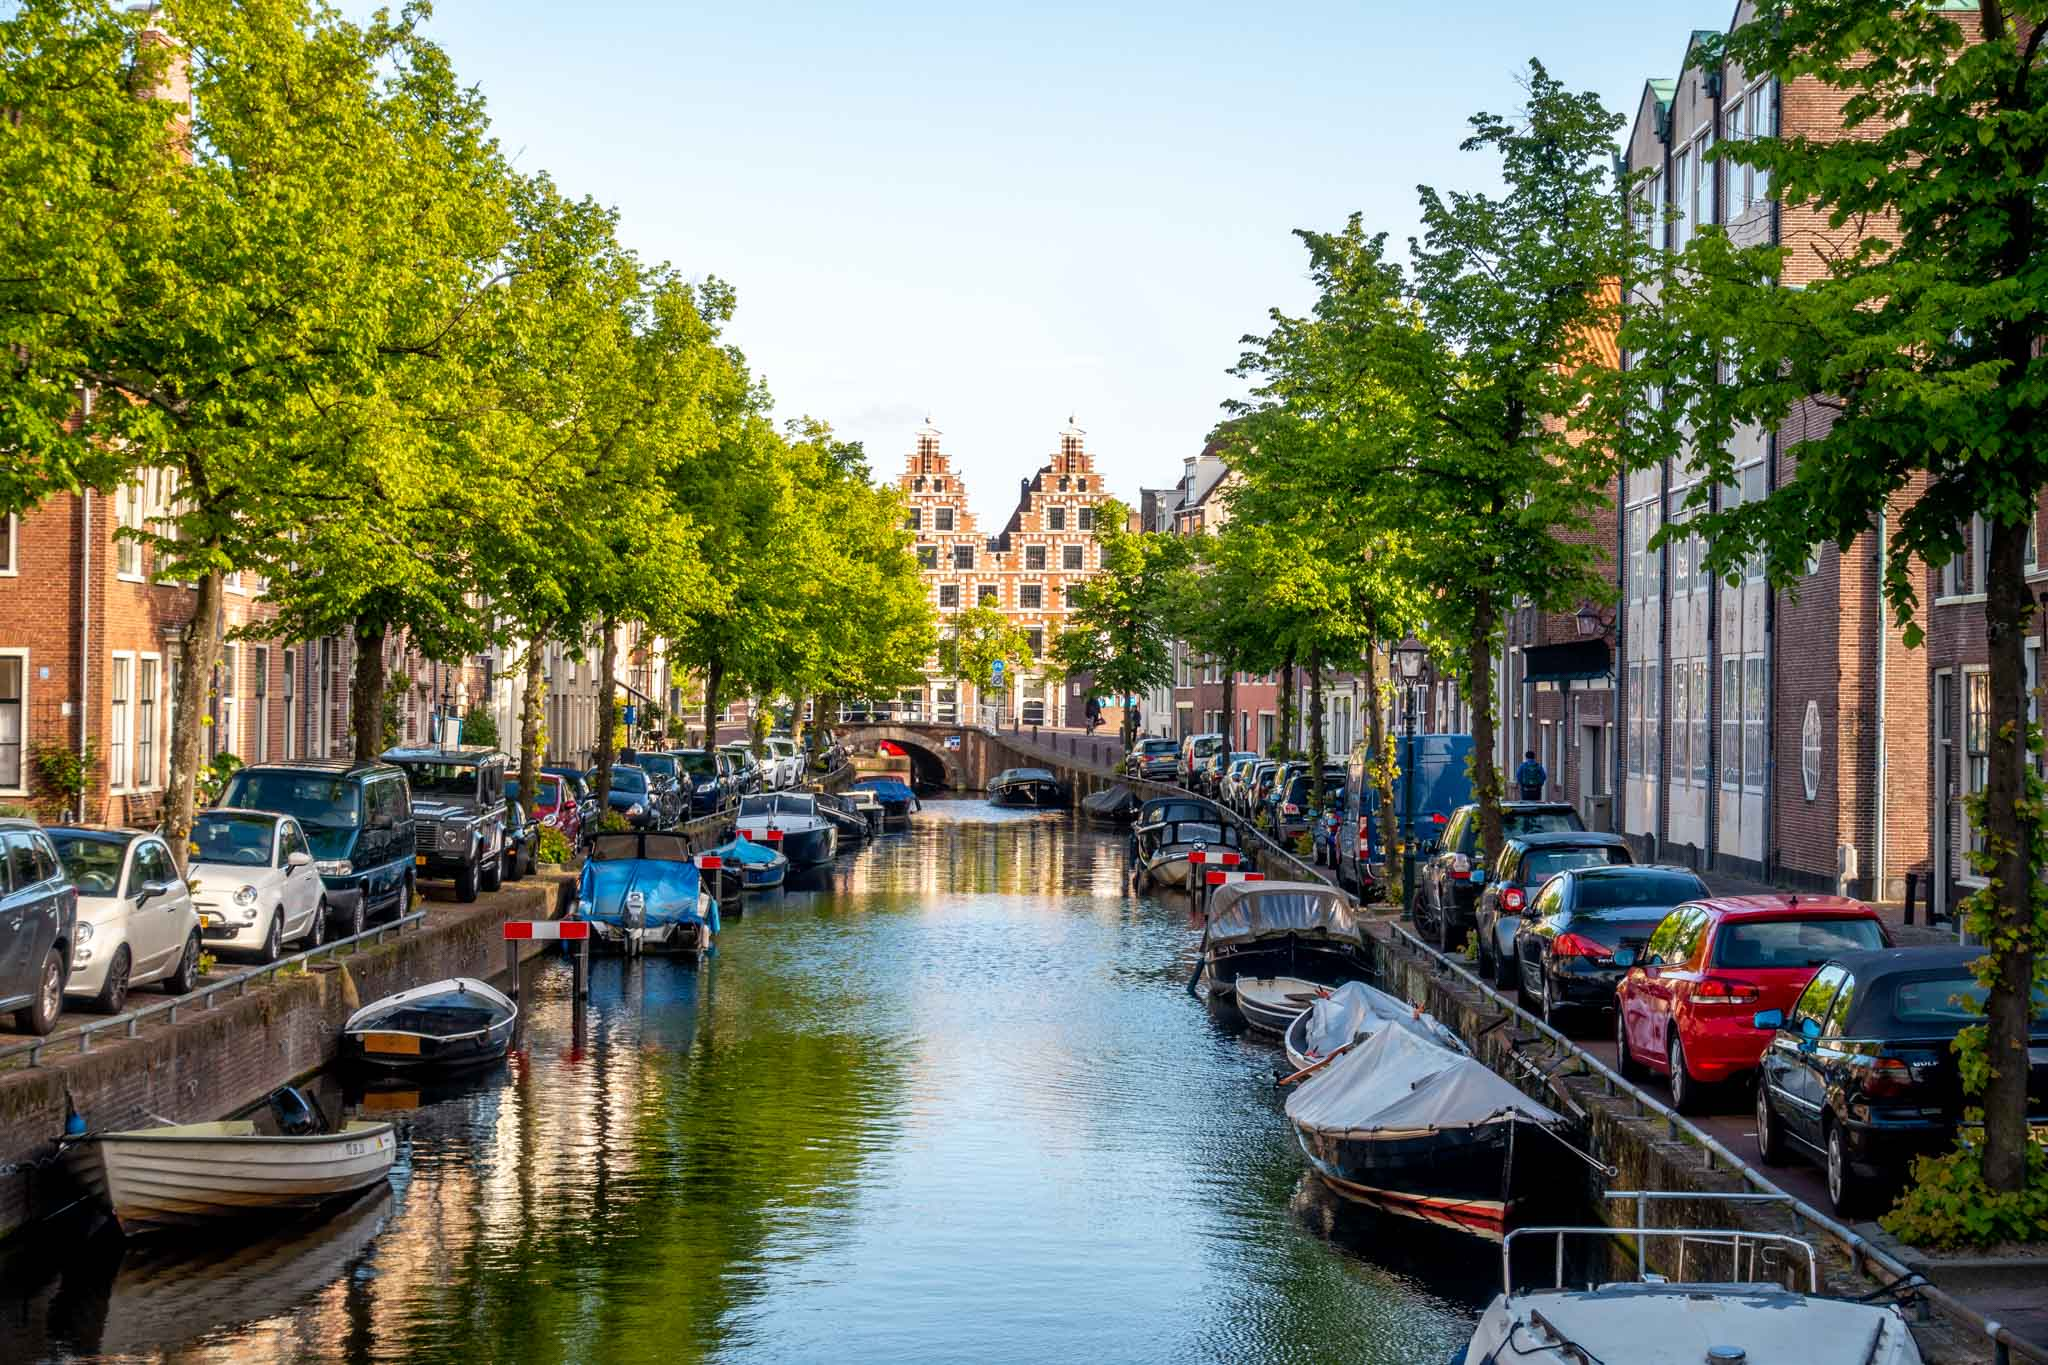 Boats and houses along a canal near sunset in Haarlem, Netherlands